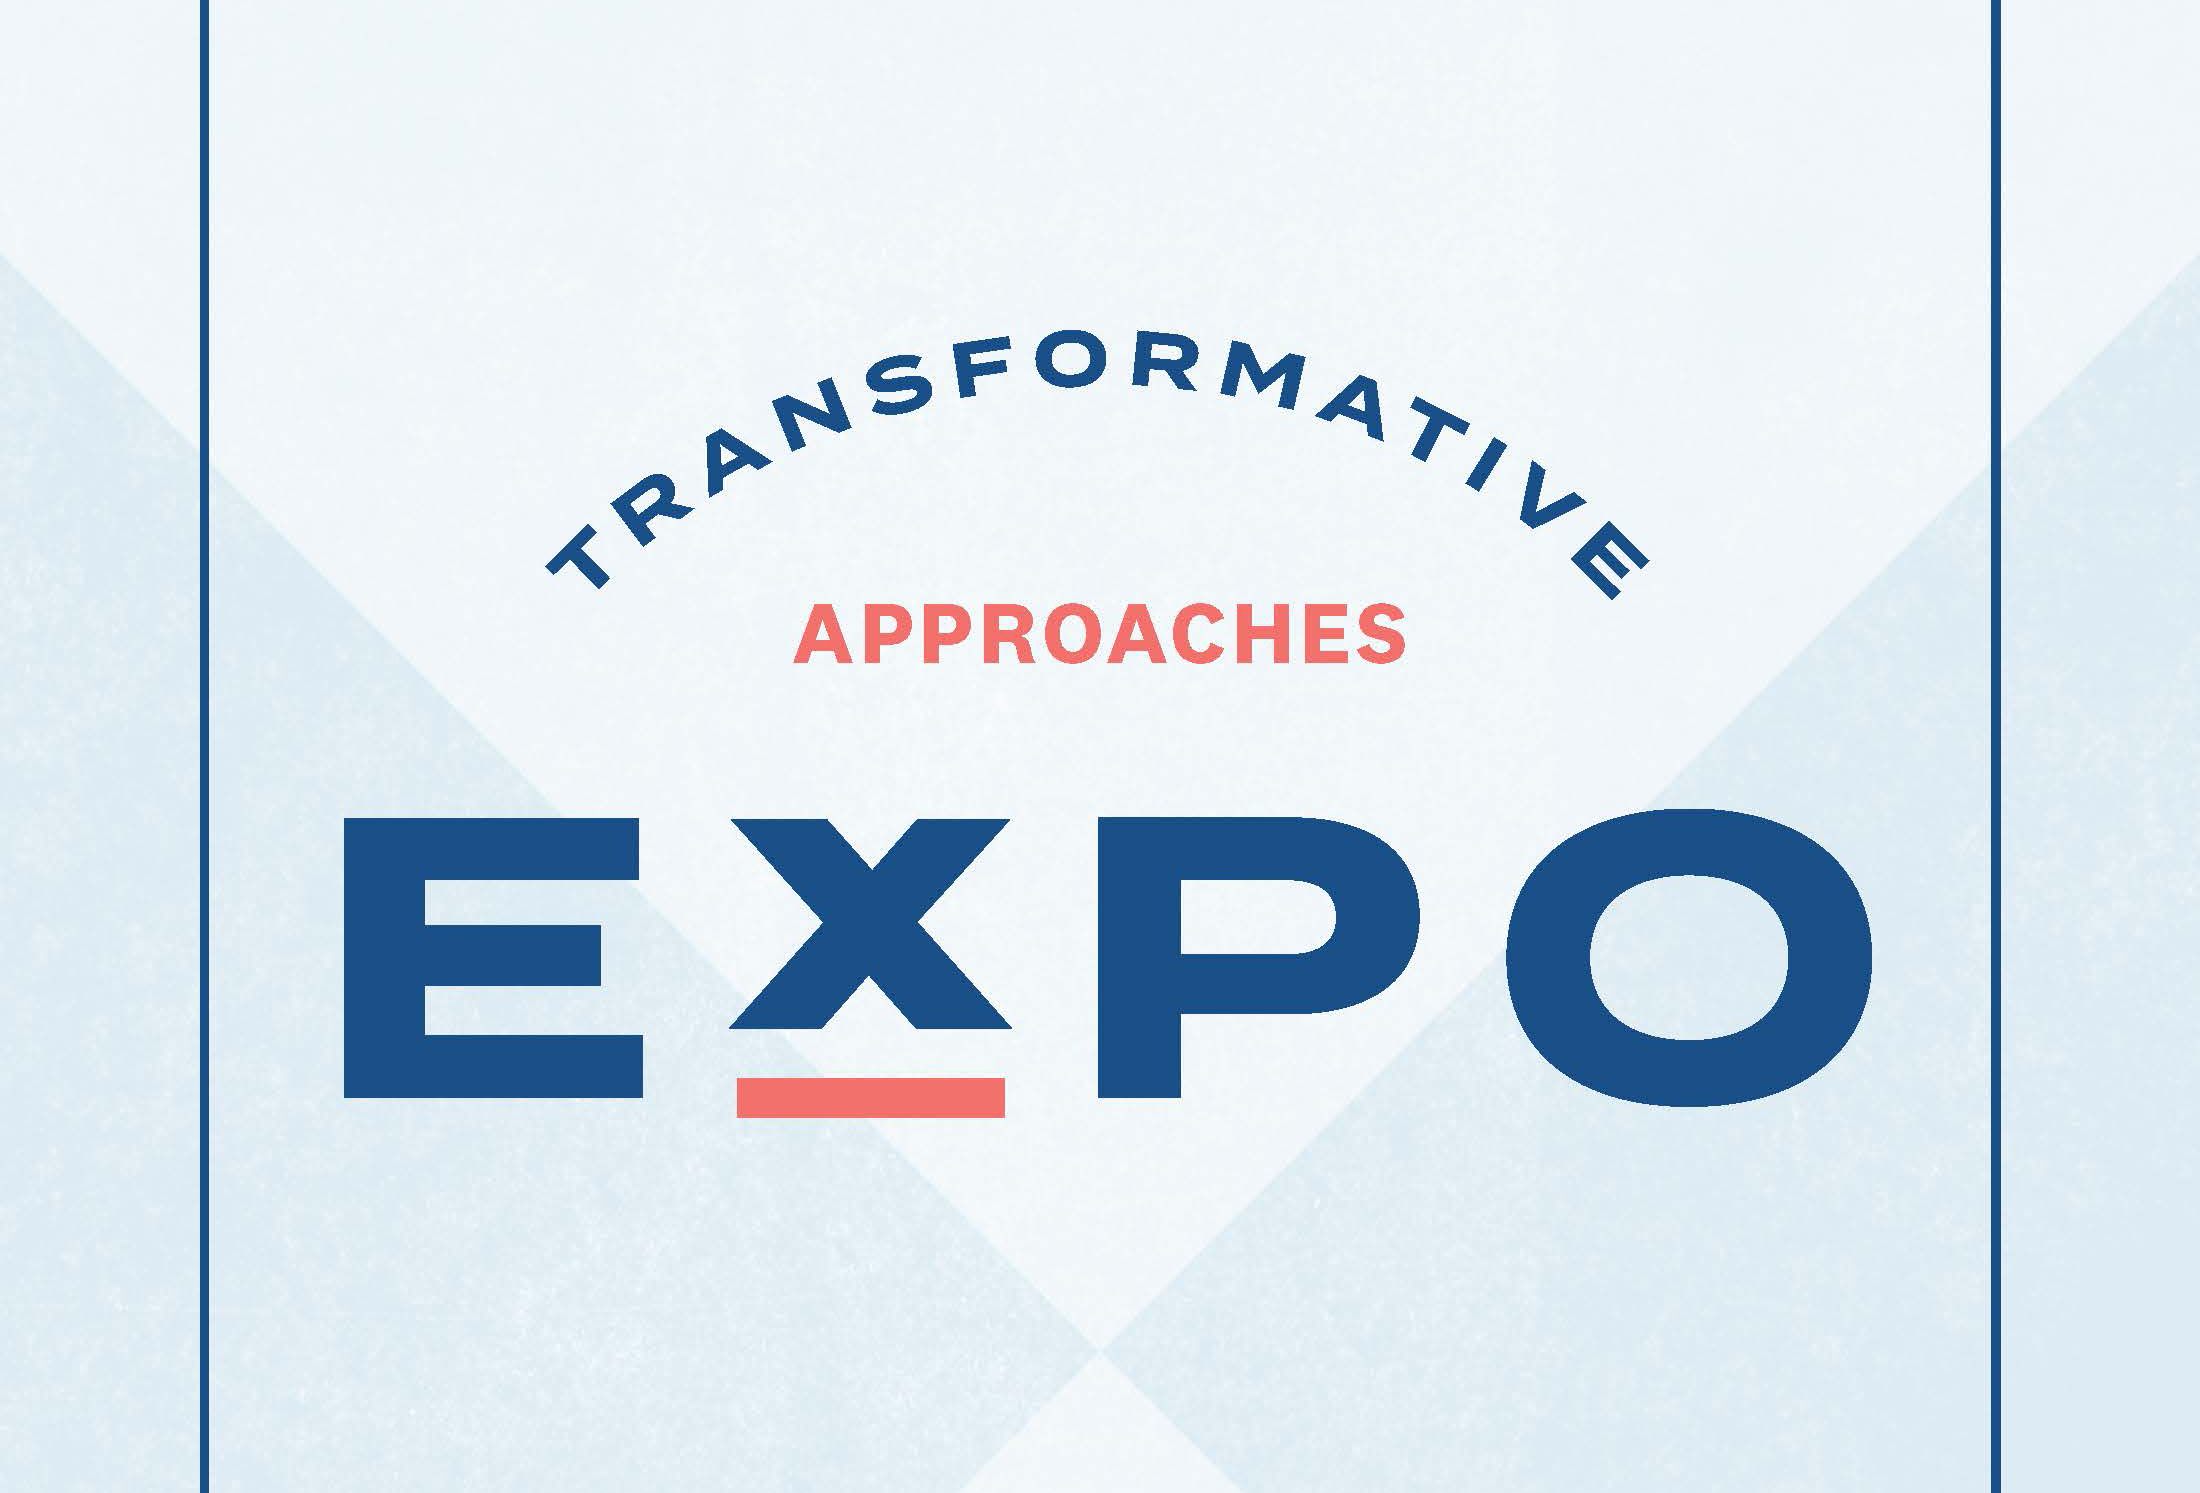 JWU-Transformative Approaches-Expo-Program-2019 12.jpg